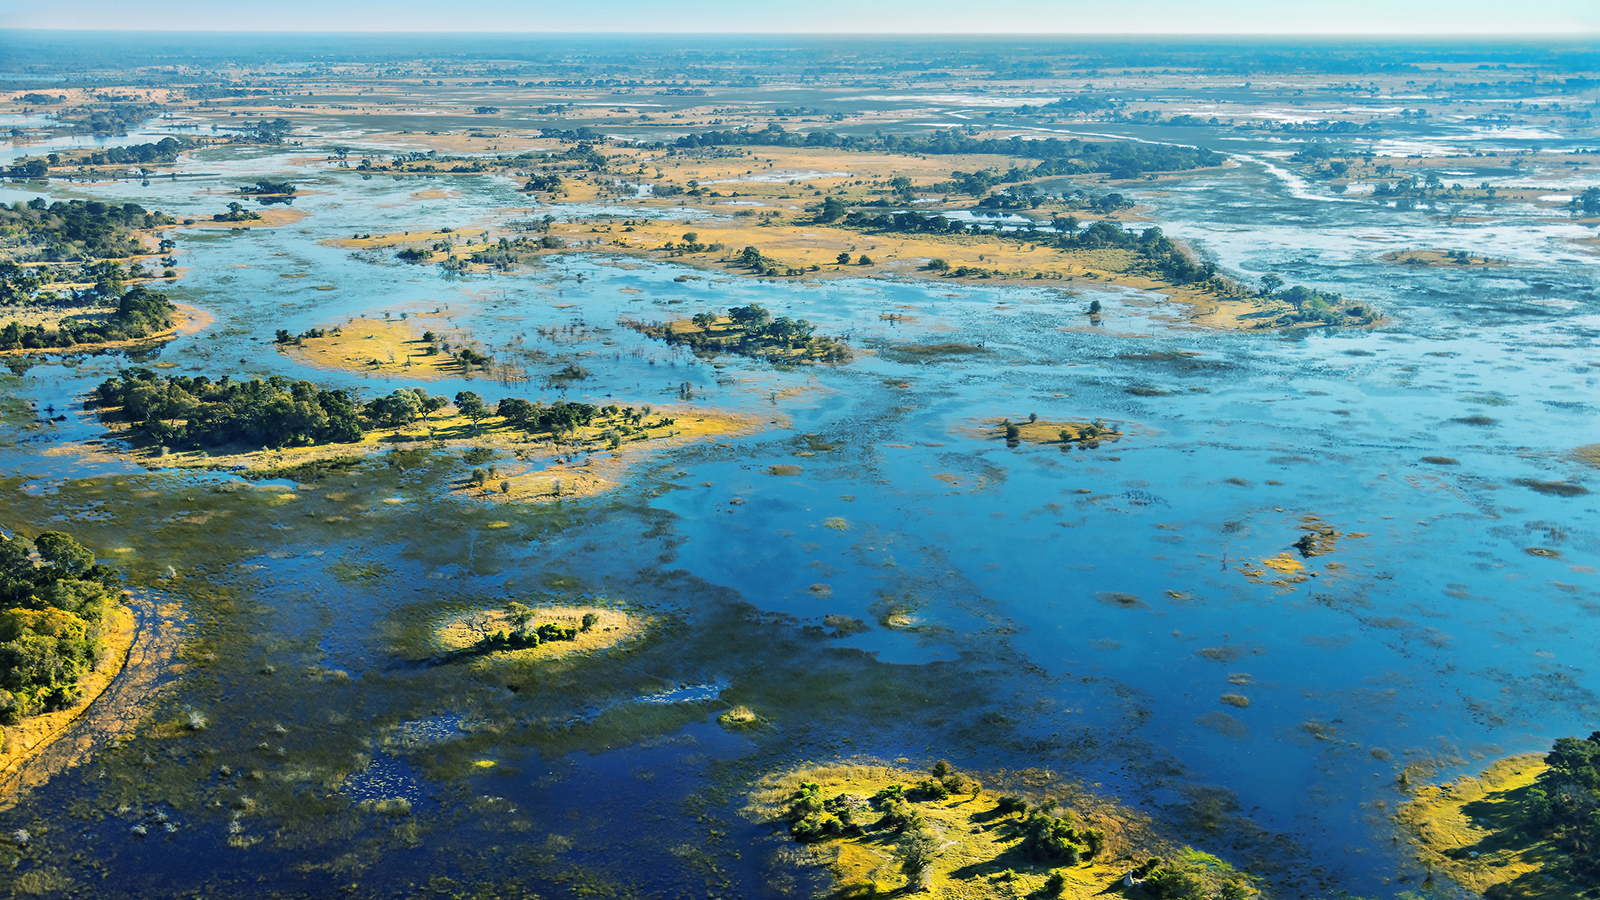 Each year when the Okavango River floods with water, it transforms into a spectacular wilderness.